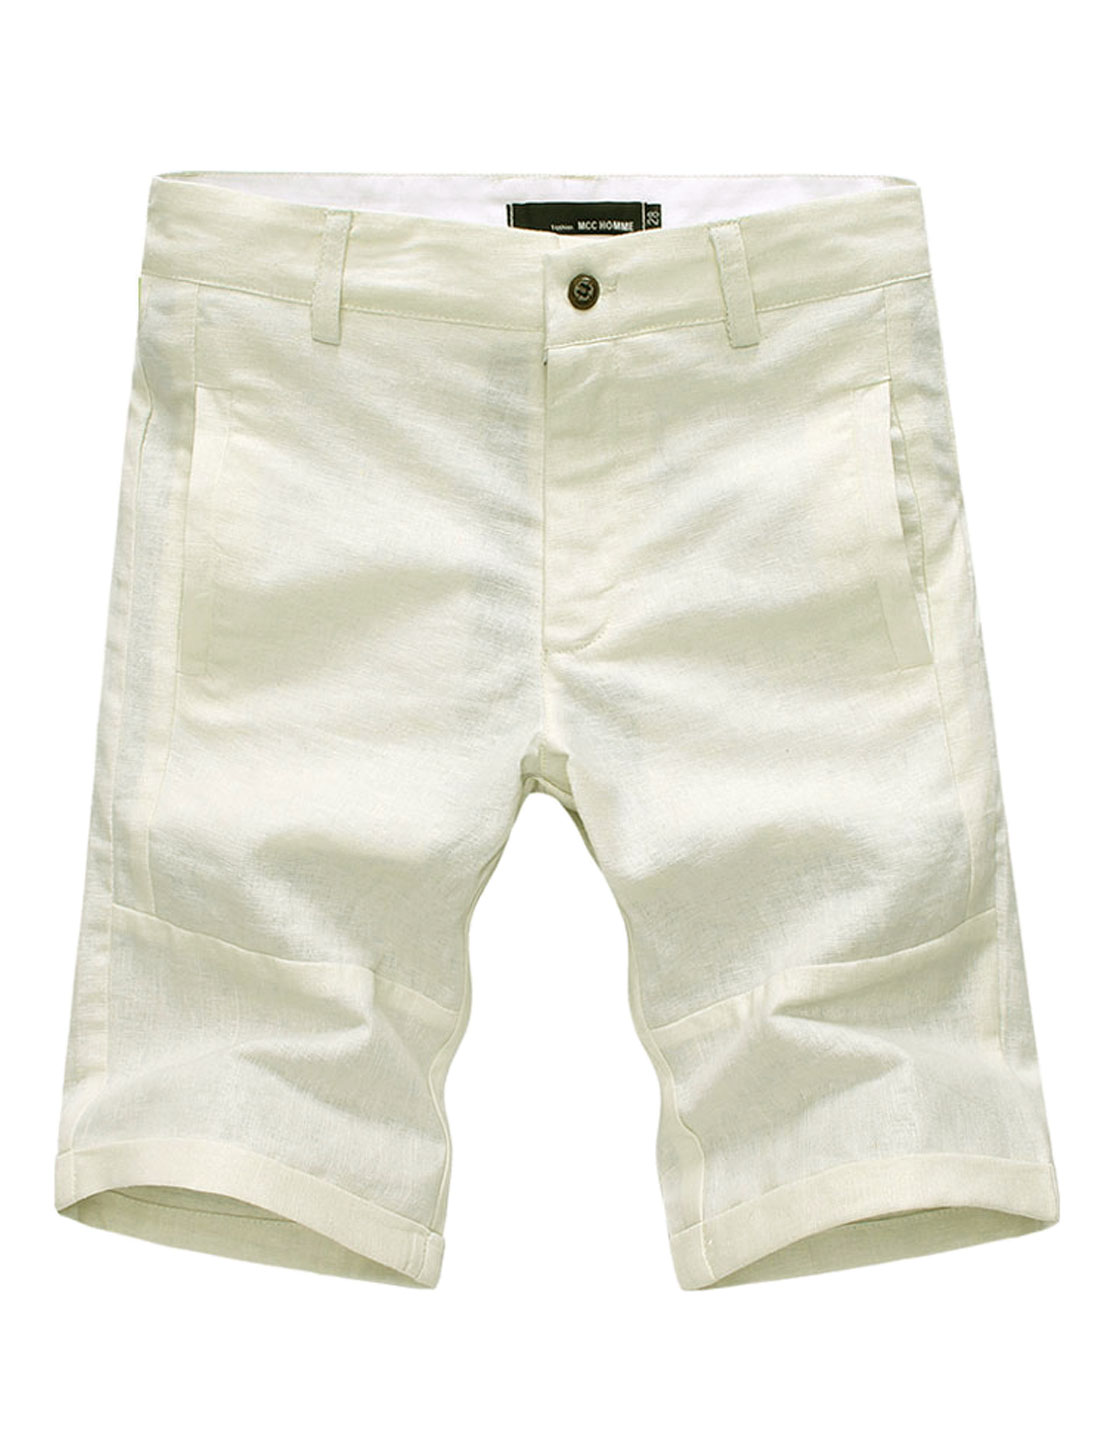 Men Two Side Pockets Buttons Decor NEW Chic Linen Shorts Beige W38